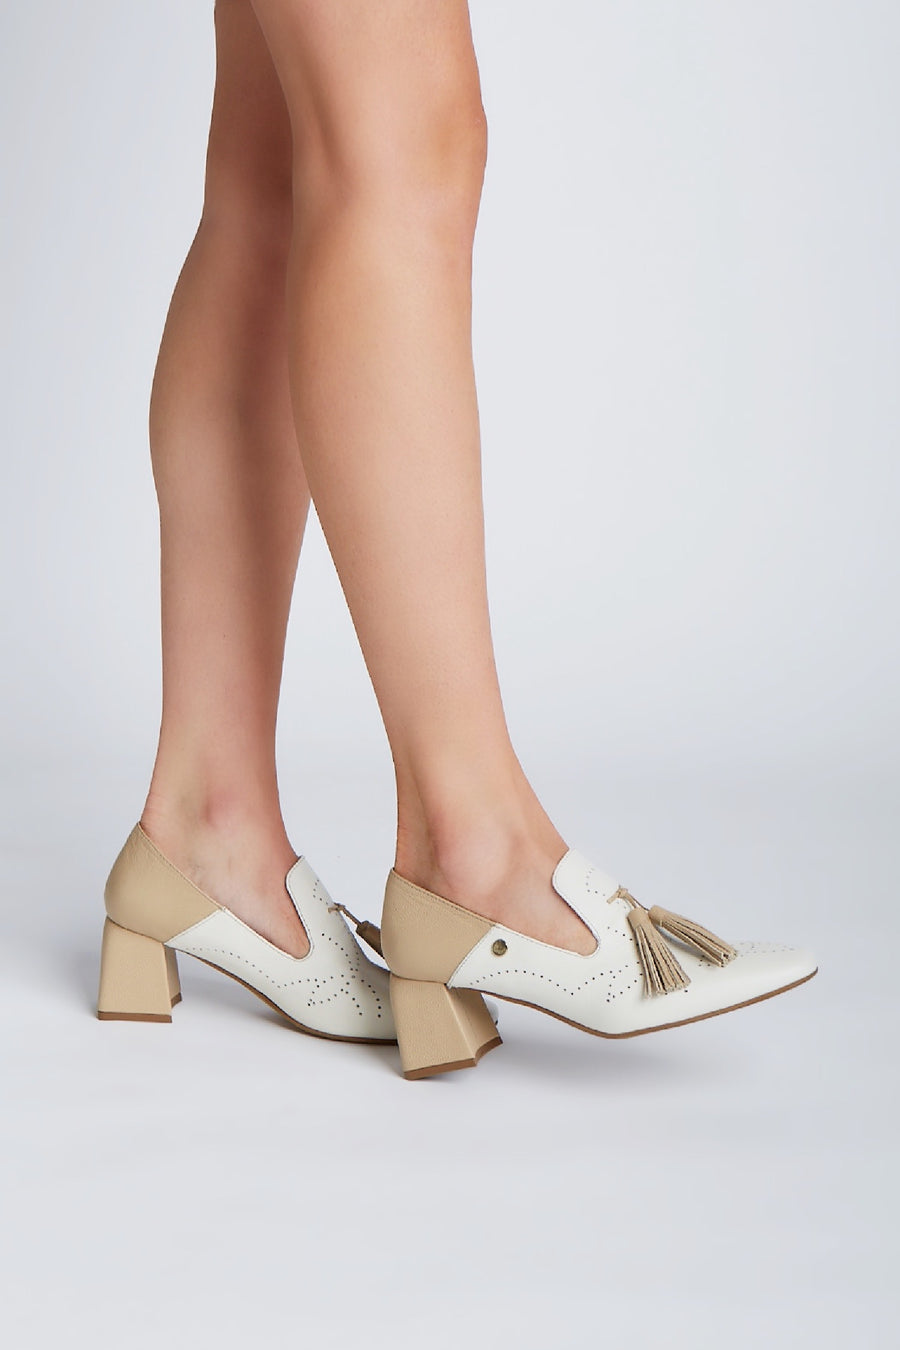 Flow heeled loafers in ivory/arequipe leather